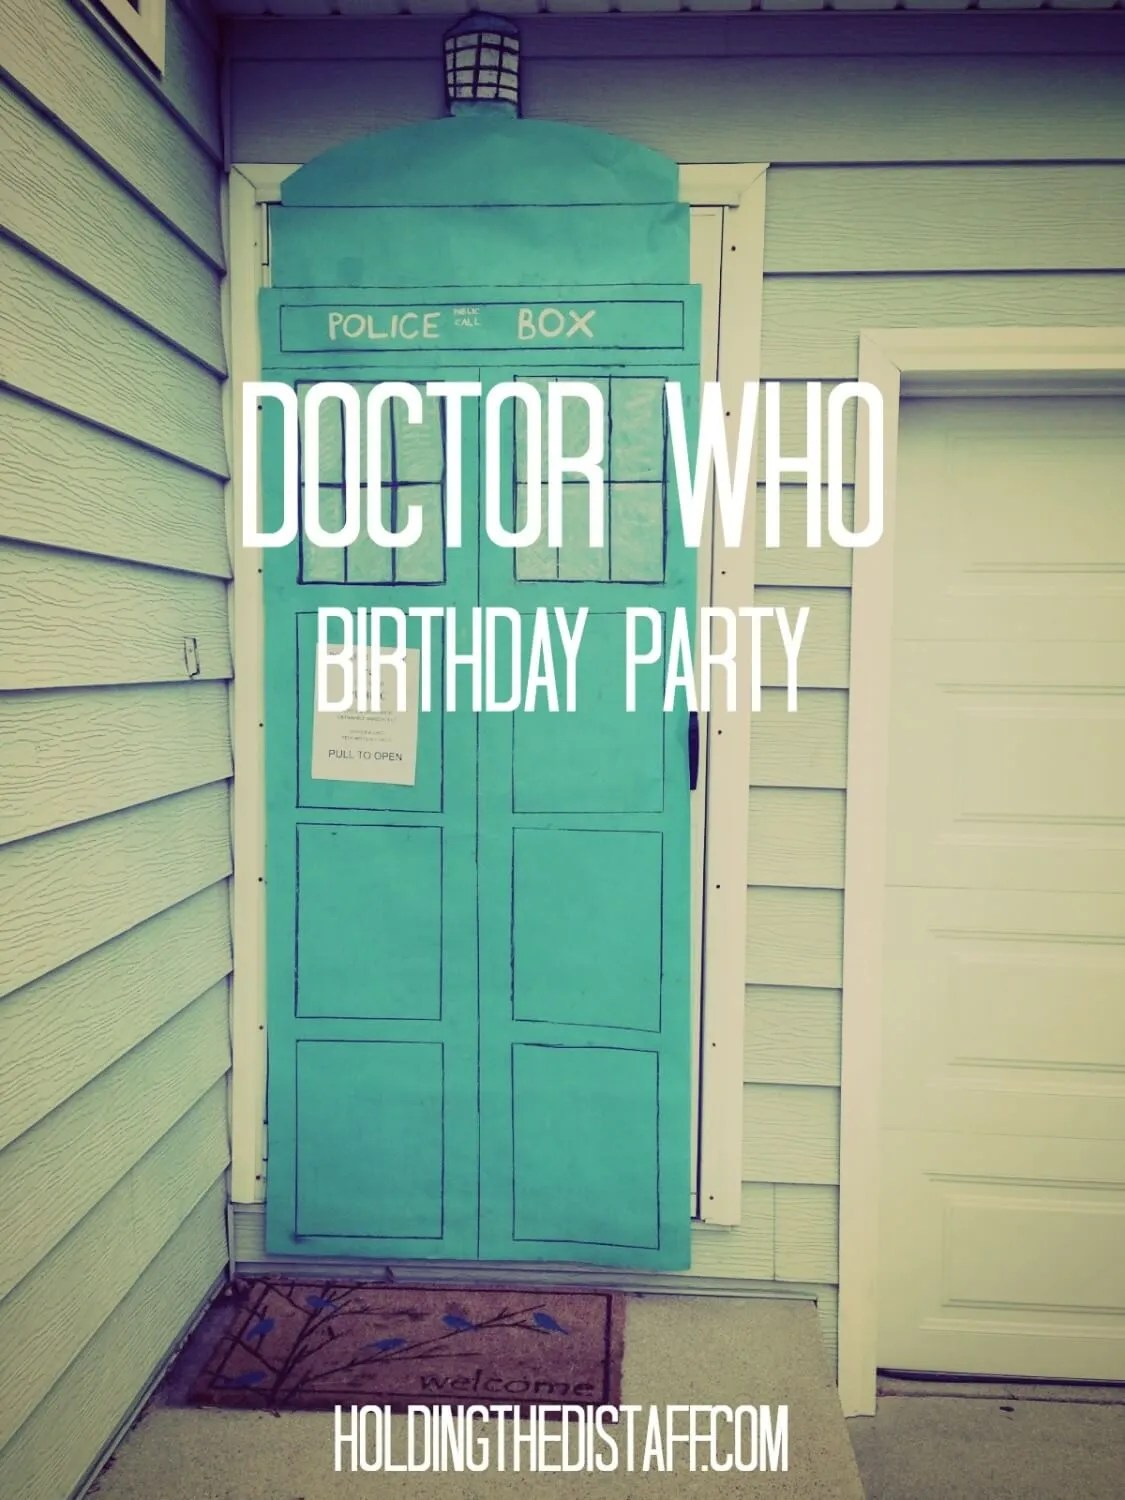 Doctor Who Birthday Party: Simple ideas to have a really great time in the Tardis.